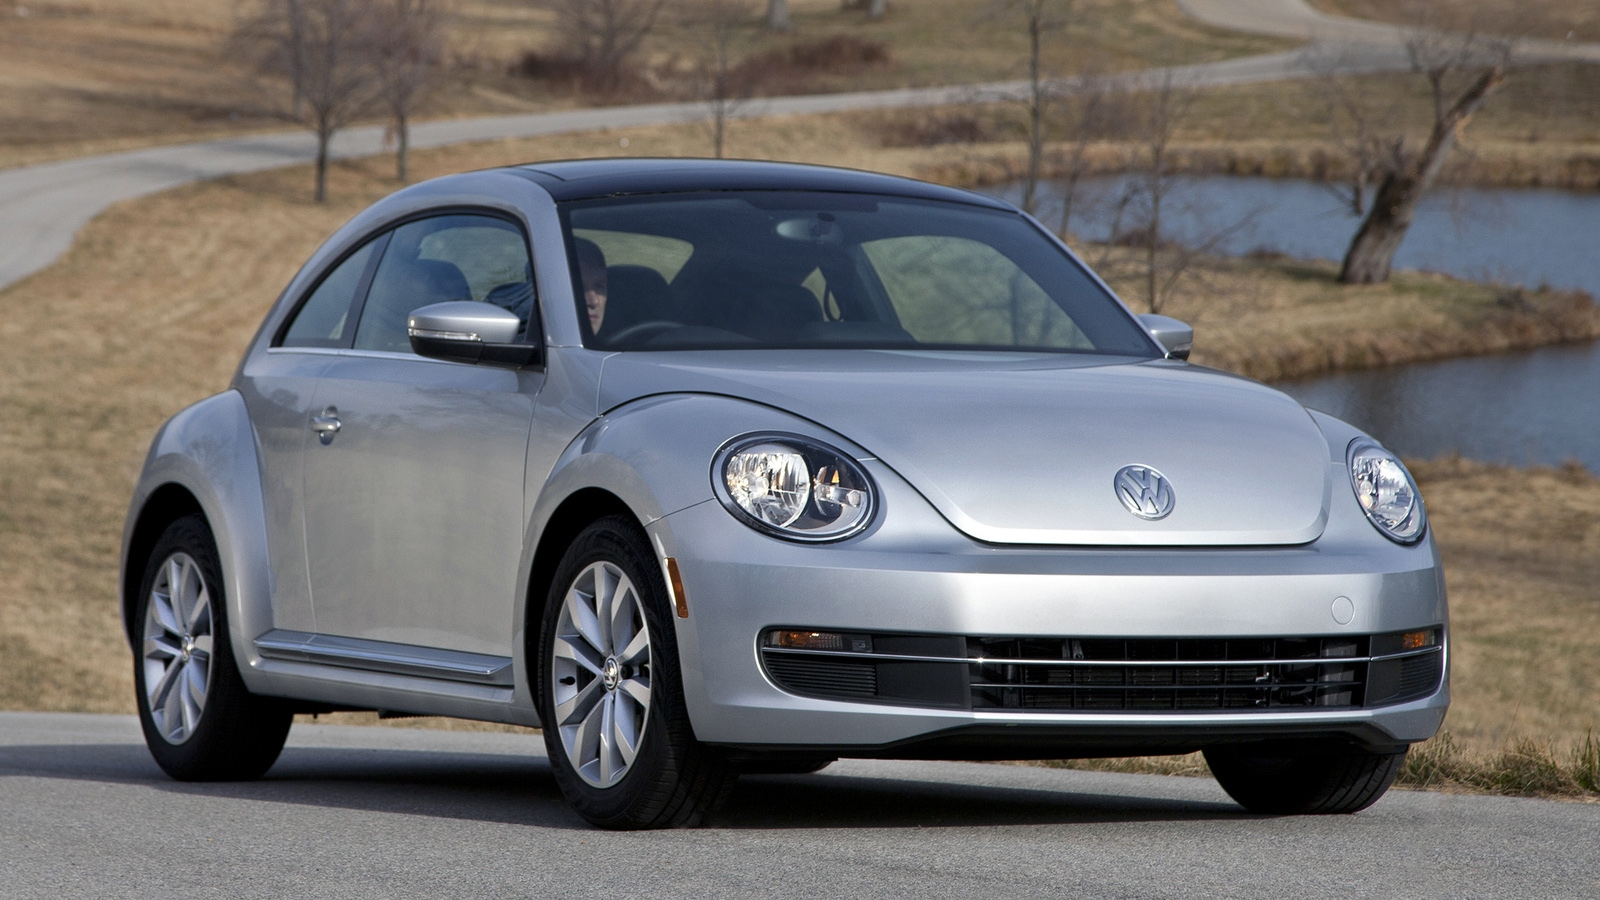 Best Volkswagen Vehicles to Choose for your Wife